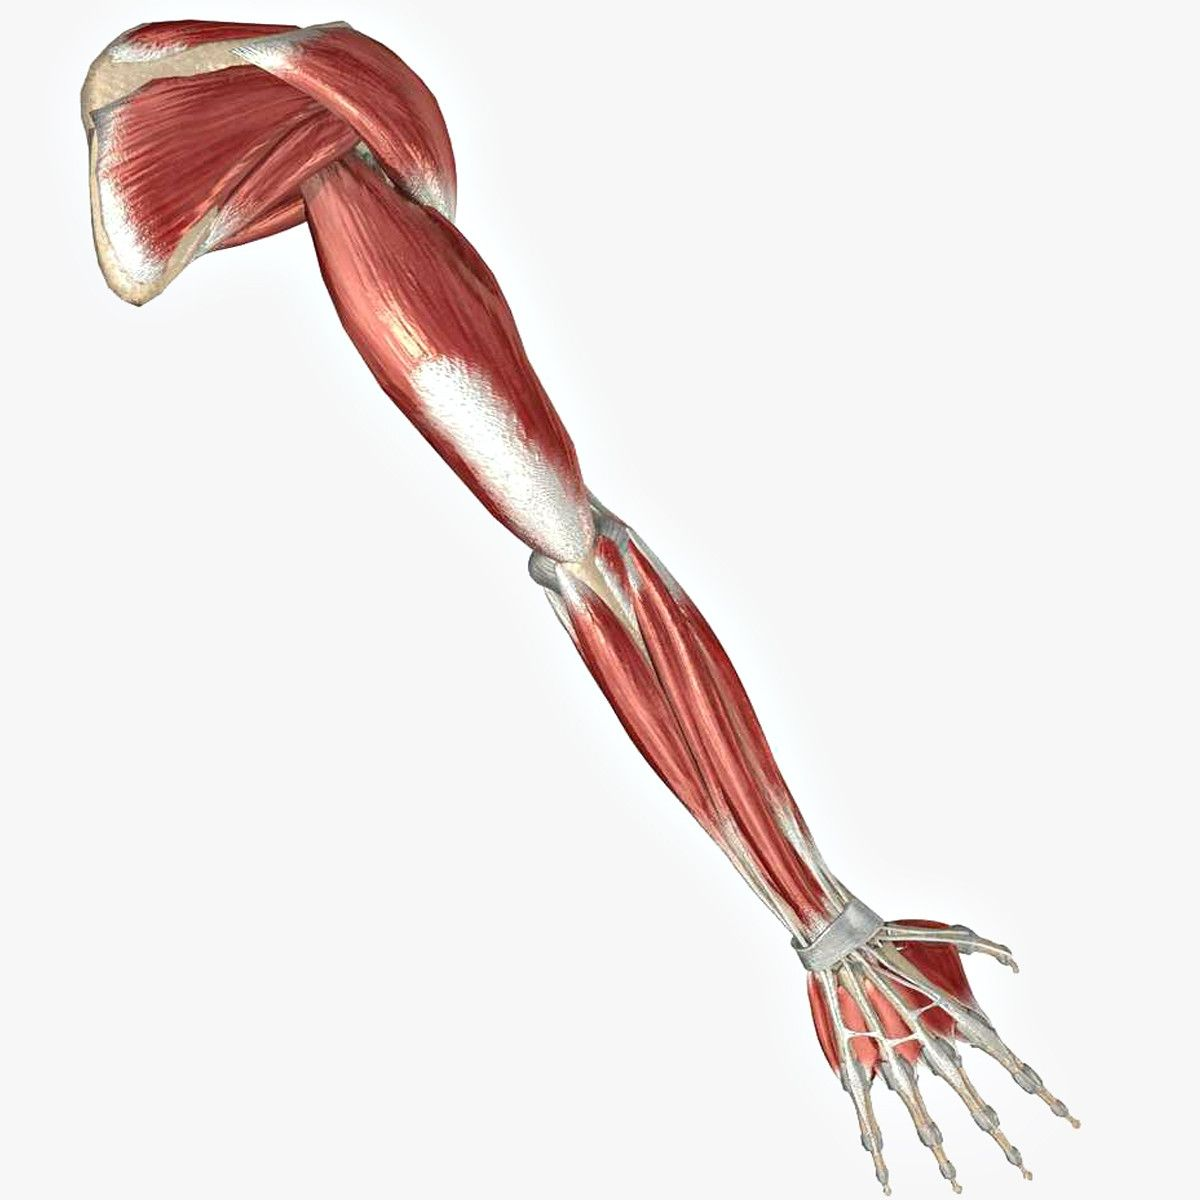 Arm Muscle And Bone